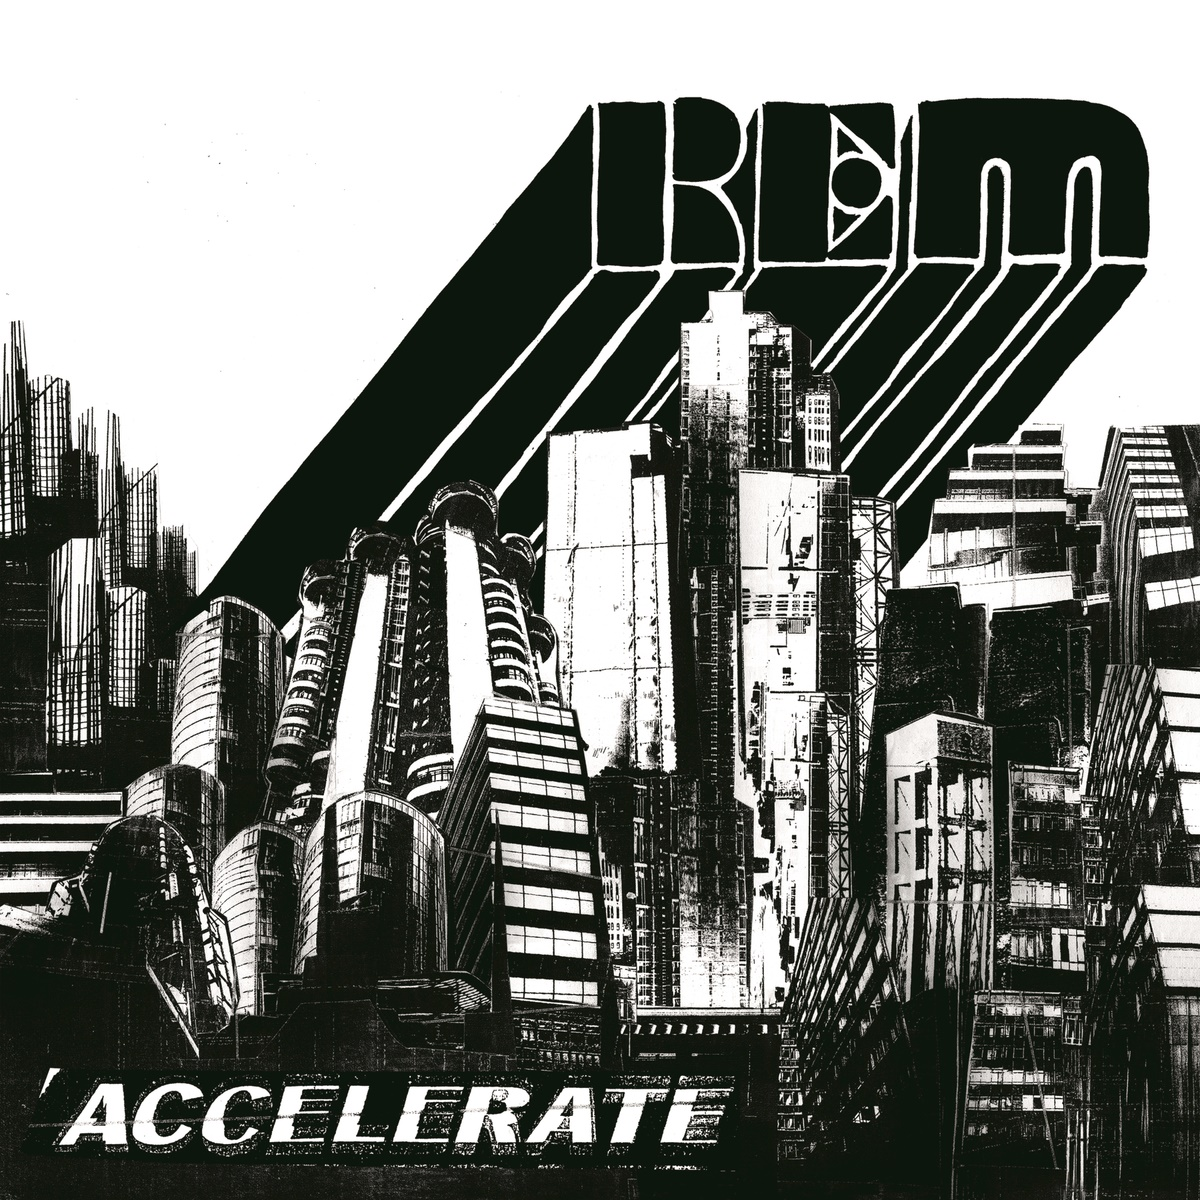 Accelerate (Deluxe edition)